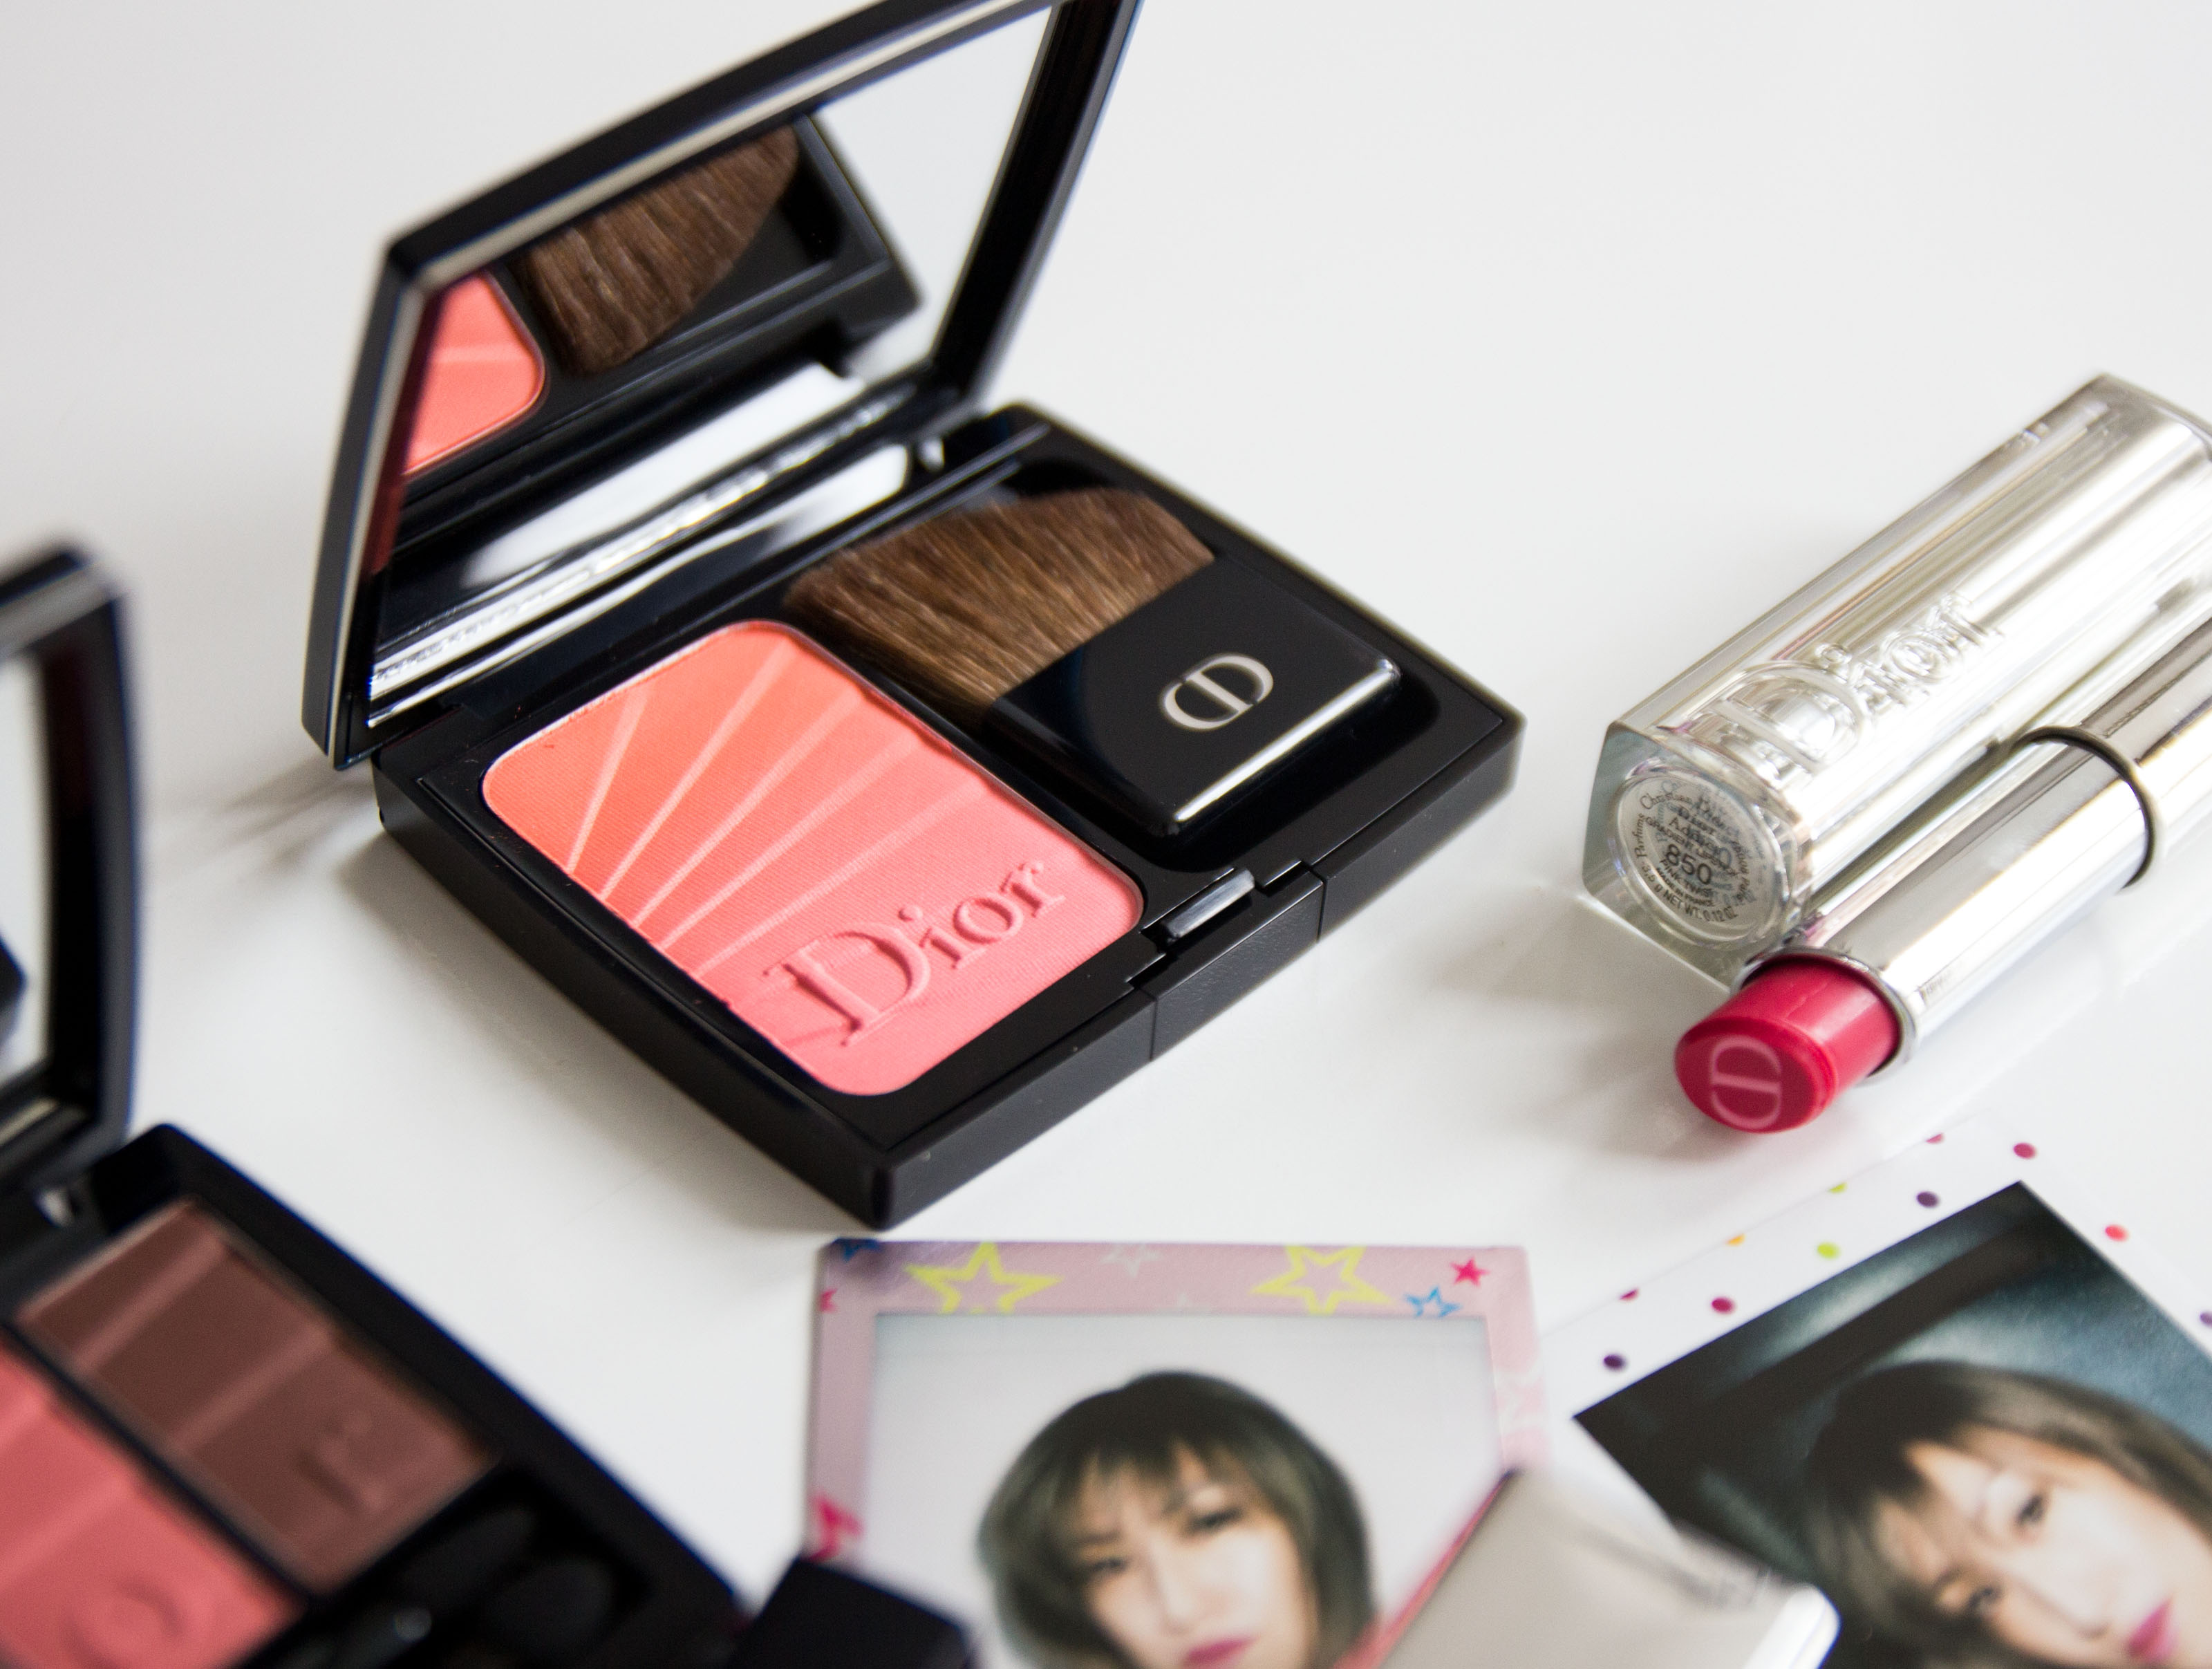 Diorblush Colour Gradation